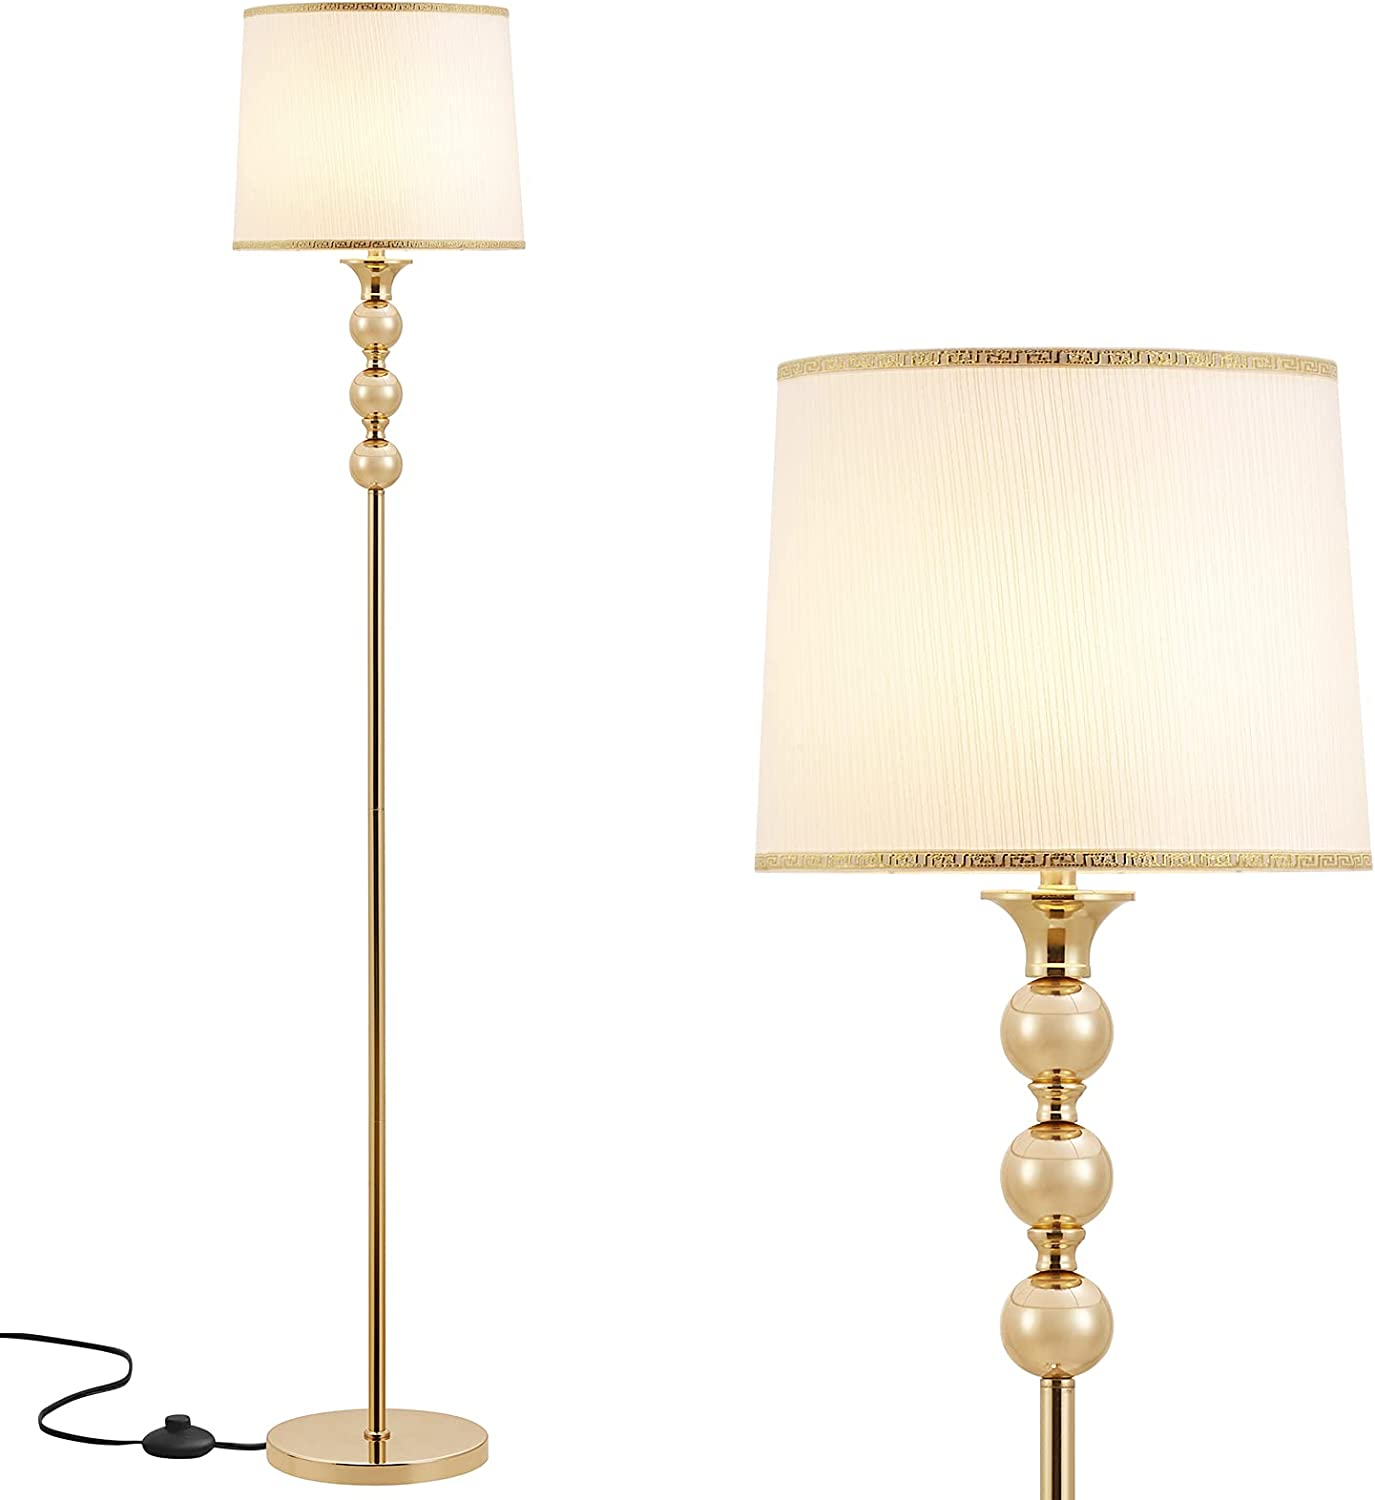 Gold Floor Lamp for Living Room Lighting, Ambimall Modern Standing Lamp with Unique Design, Tall Pole Lamp for Bedroom Kitchen Office Dinning Room, Mid Century Modern Floor Lamp with Elegant Lampshade